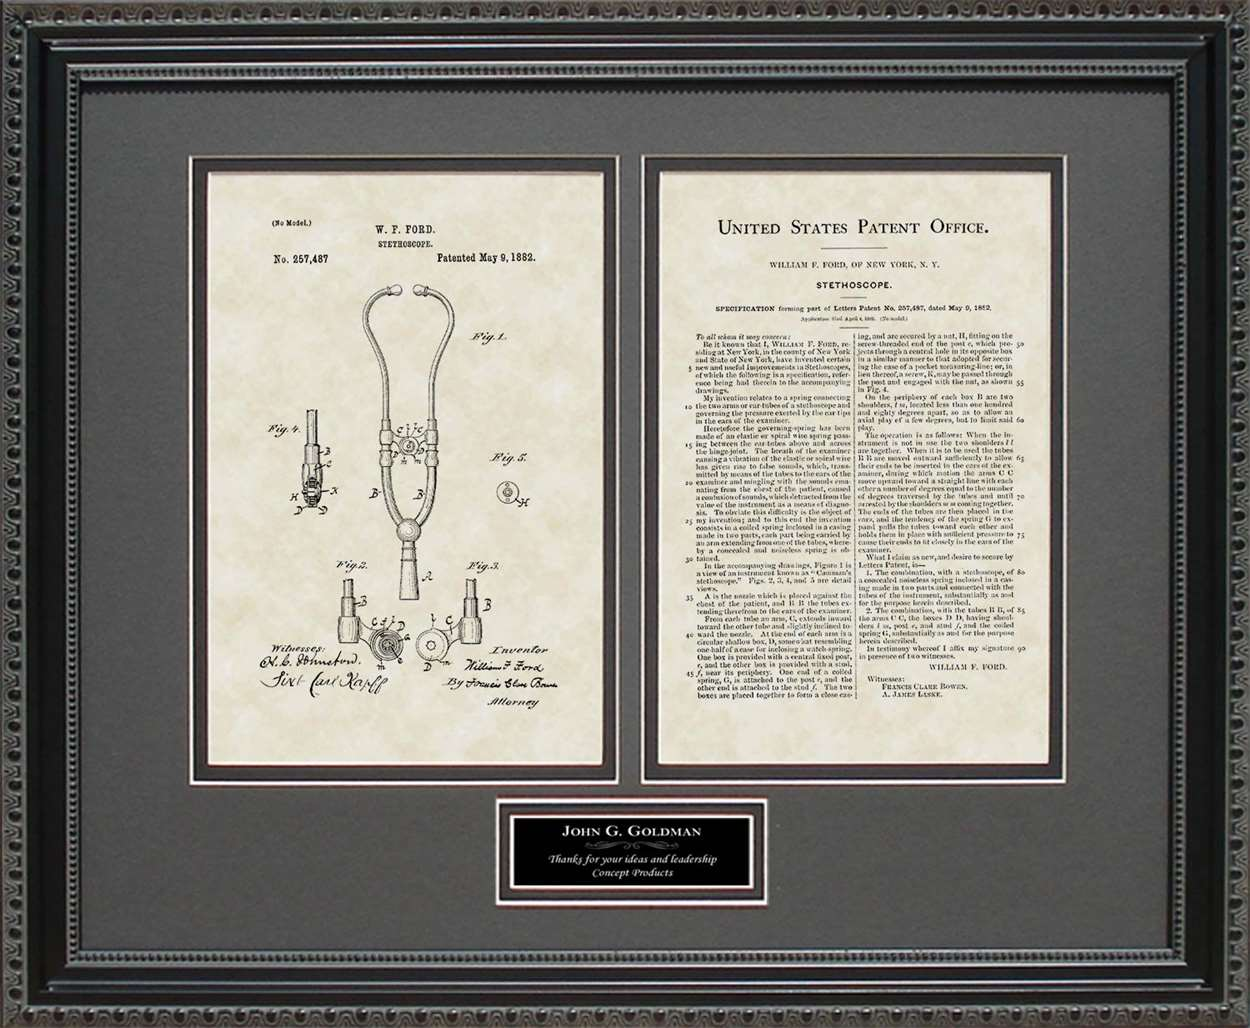 Personalized Stethoscope Patent, Art & Copy, Ford, 1881